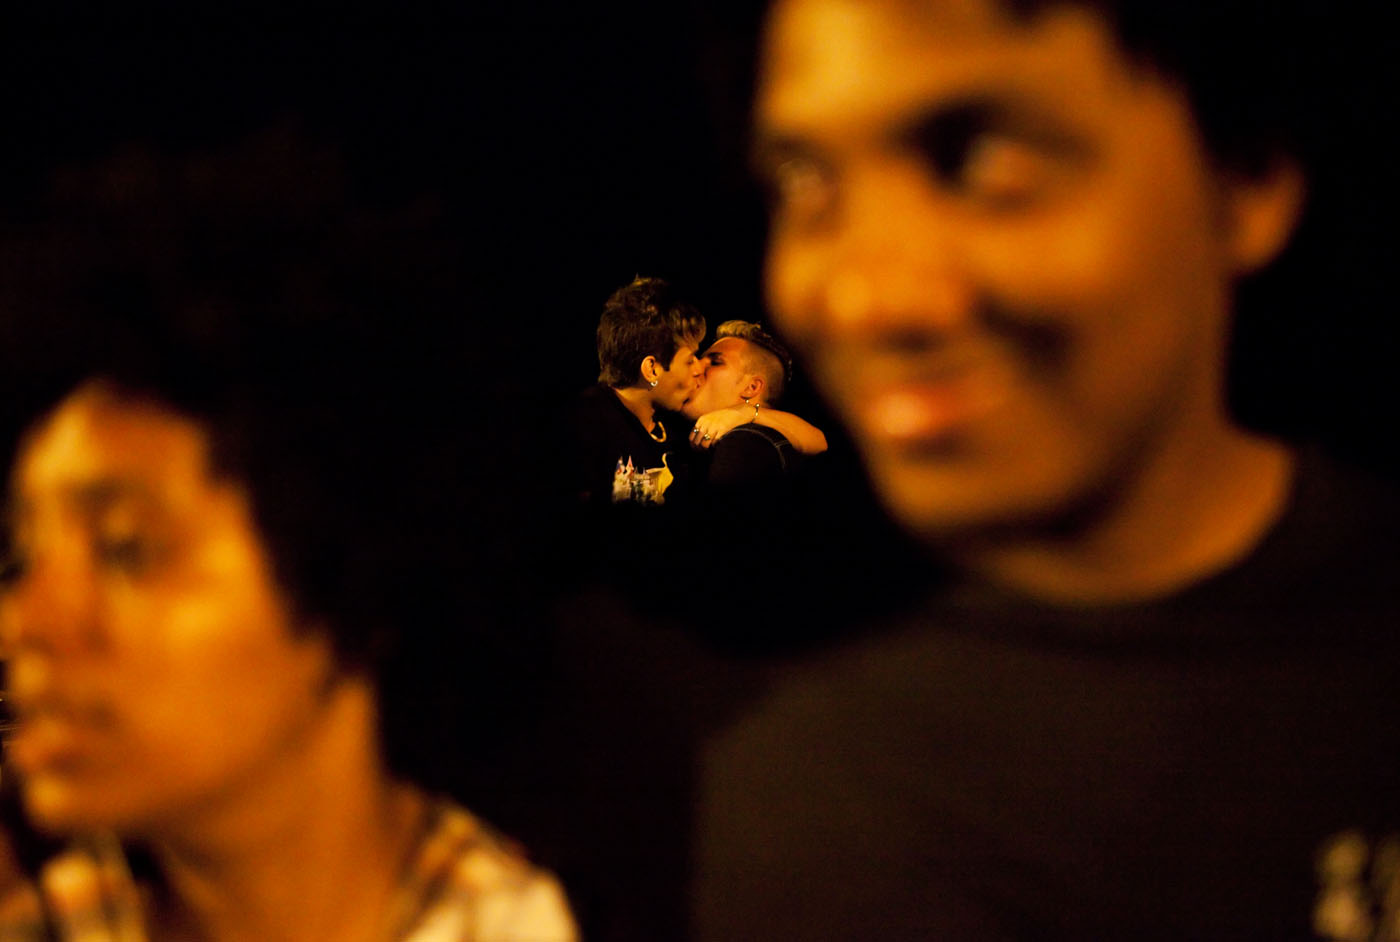 Two boys kiss while sitting on the sea wall along the Malecón. Much of Cuban life is lived on the streets. On a Friday or Saturday night, the strip of seawall from Calle 23 to Havana Vieja is lined with people of all sexes and genders expressing themselves openly.